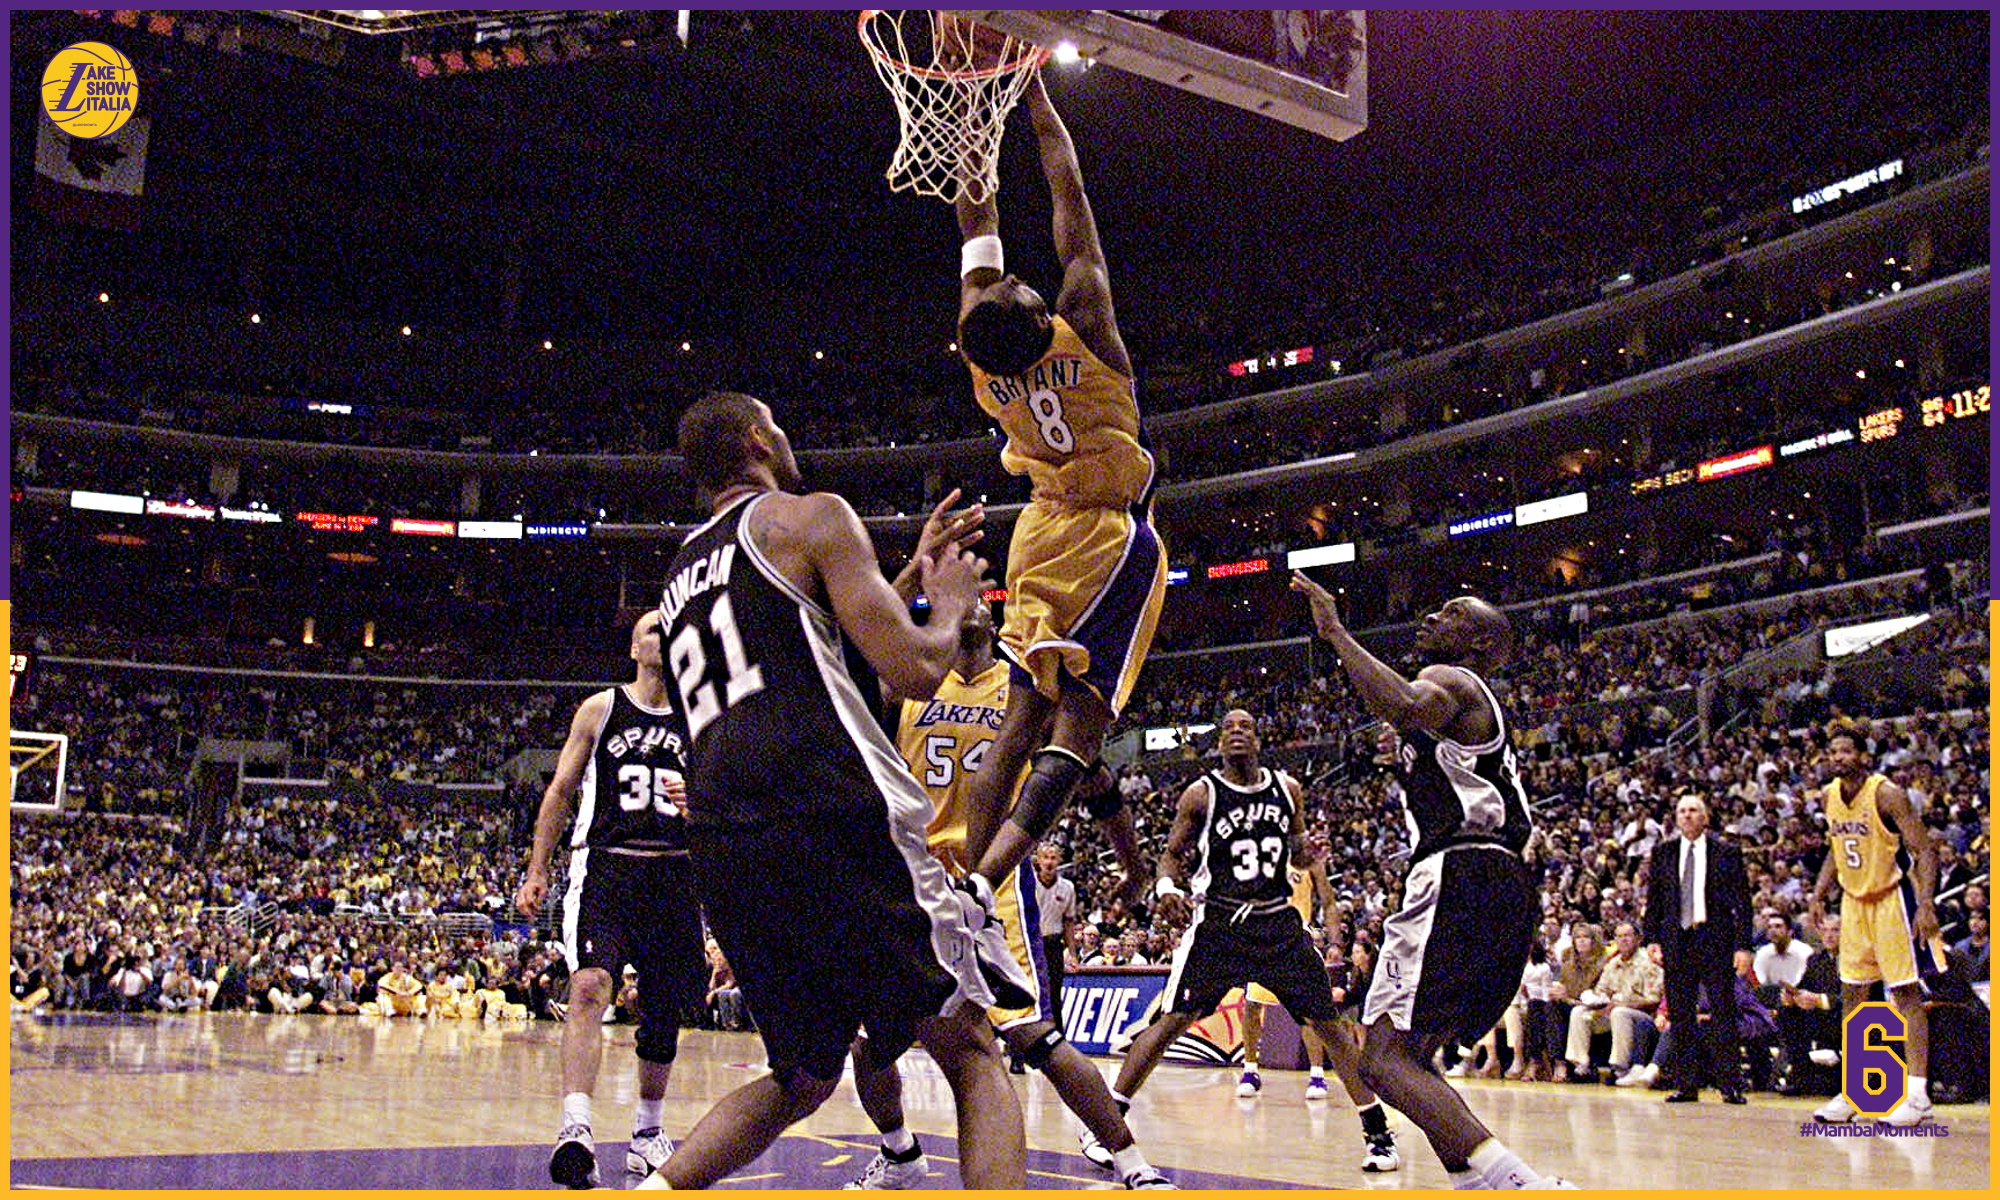 Kobe Bryant, Los Angeles Lakers vs San Antonio Spurs in Game Three of the Western Conference Finals at Staples Center in Los Angeles, California on May 25, 2001